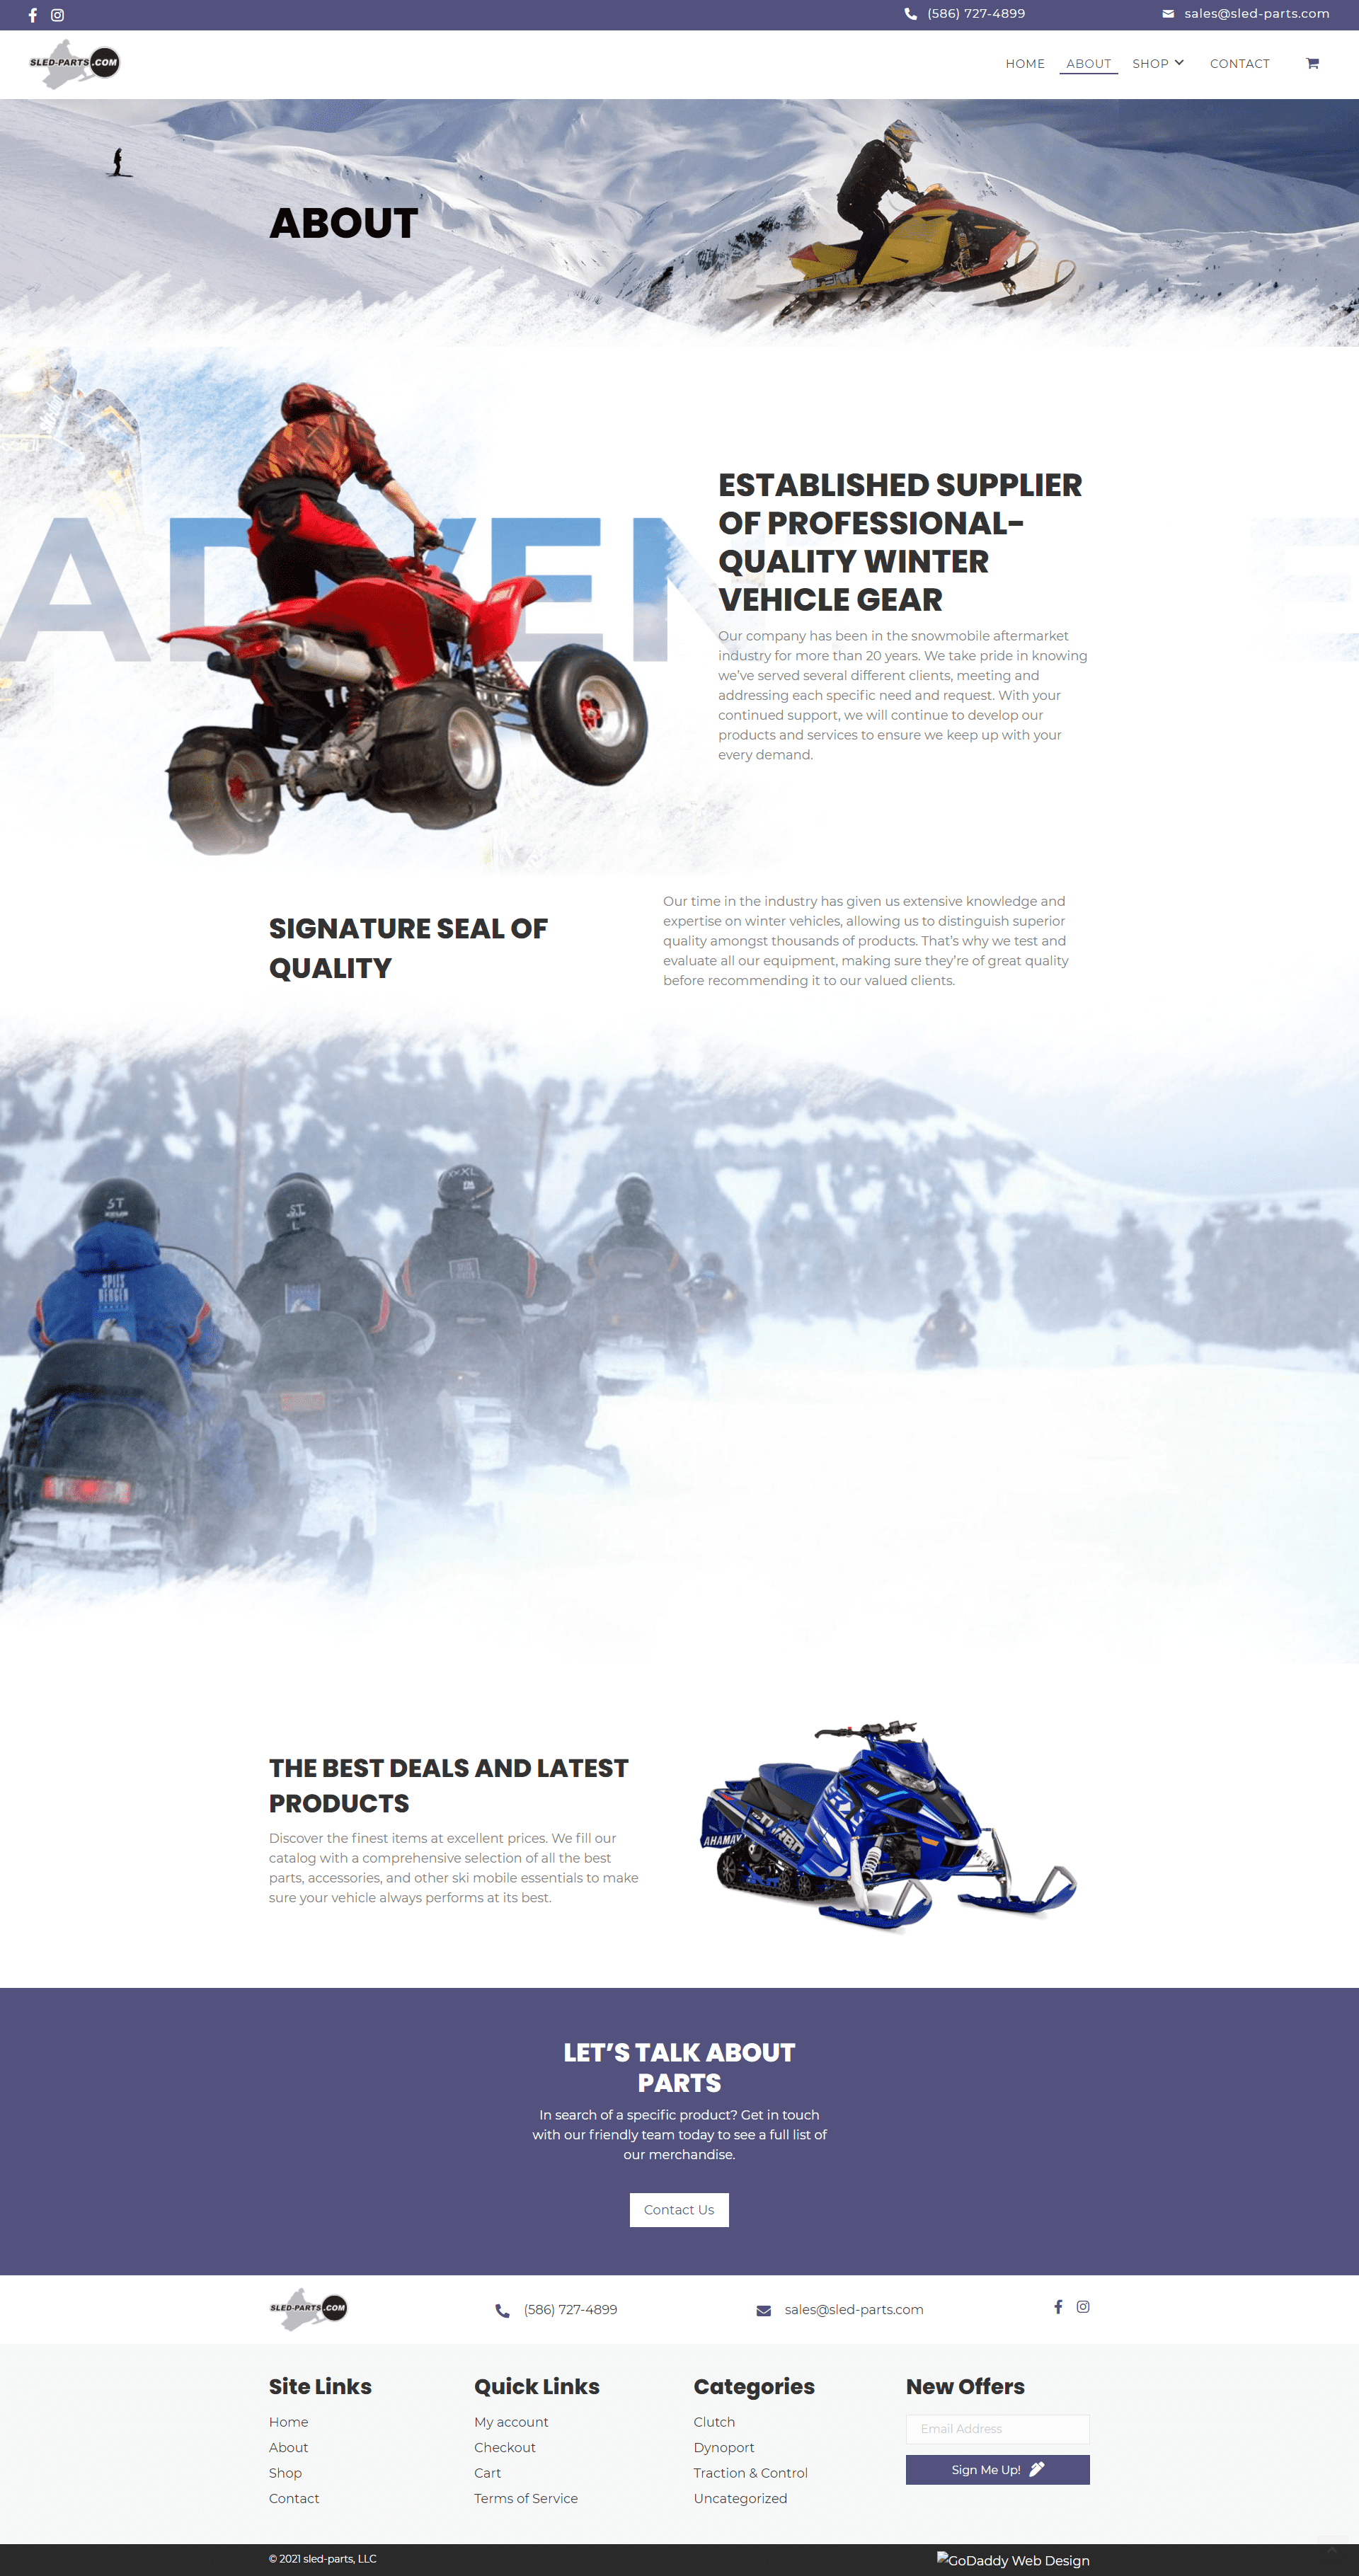 sled-parts, LLC About